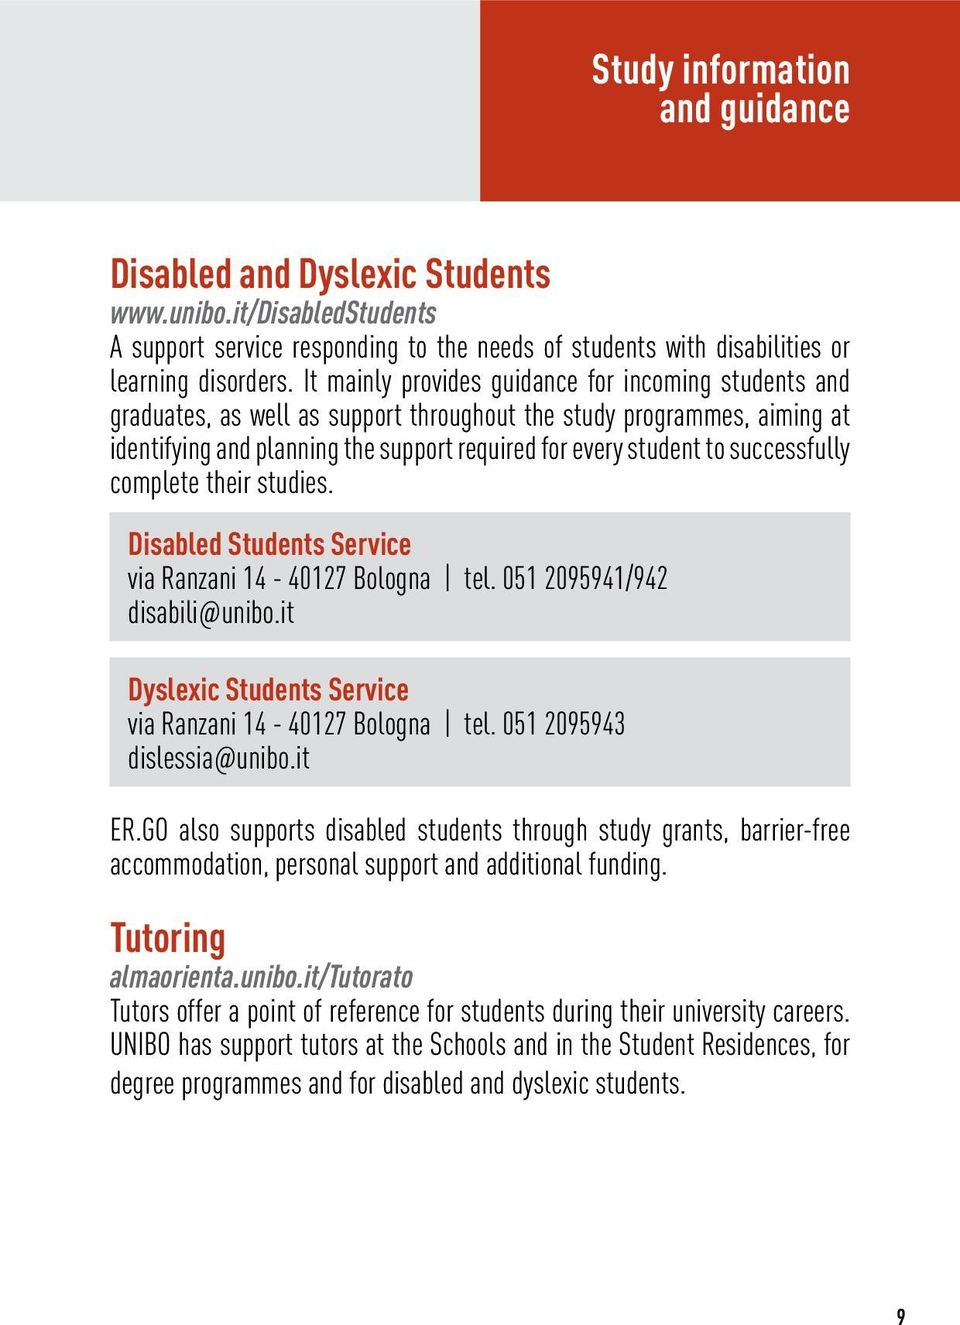 successfully complete their studies. Disabled Students Service via Ranzani 14-40127 Bologna tel. 051 2095941/942 disabili@unibo.it Dyslexic Students Service via Ranzani 14-40127 Bologna tel.